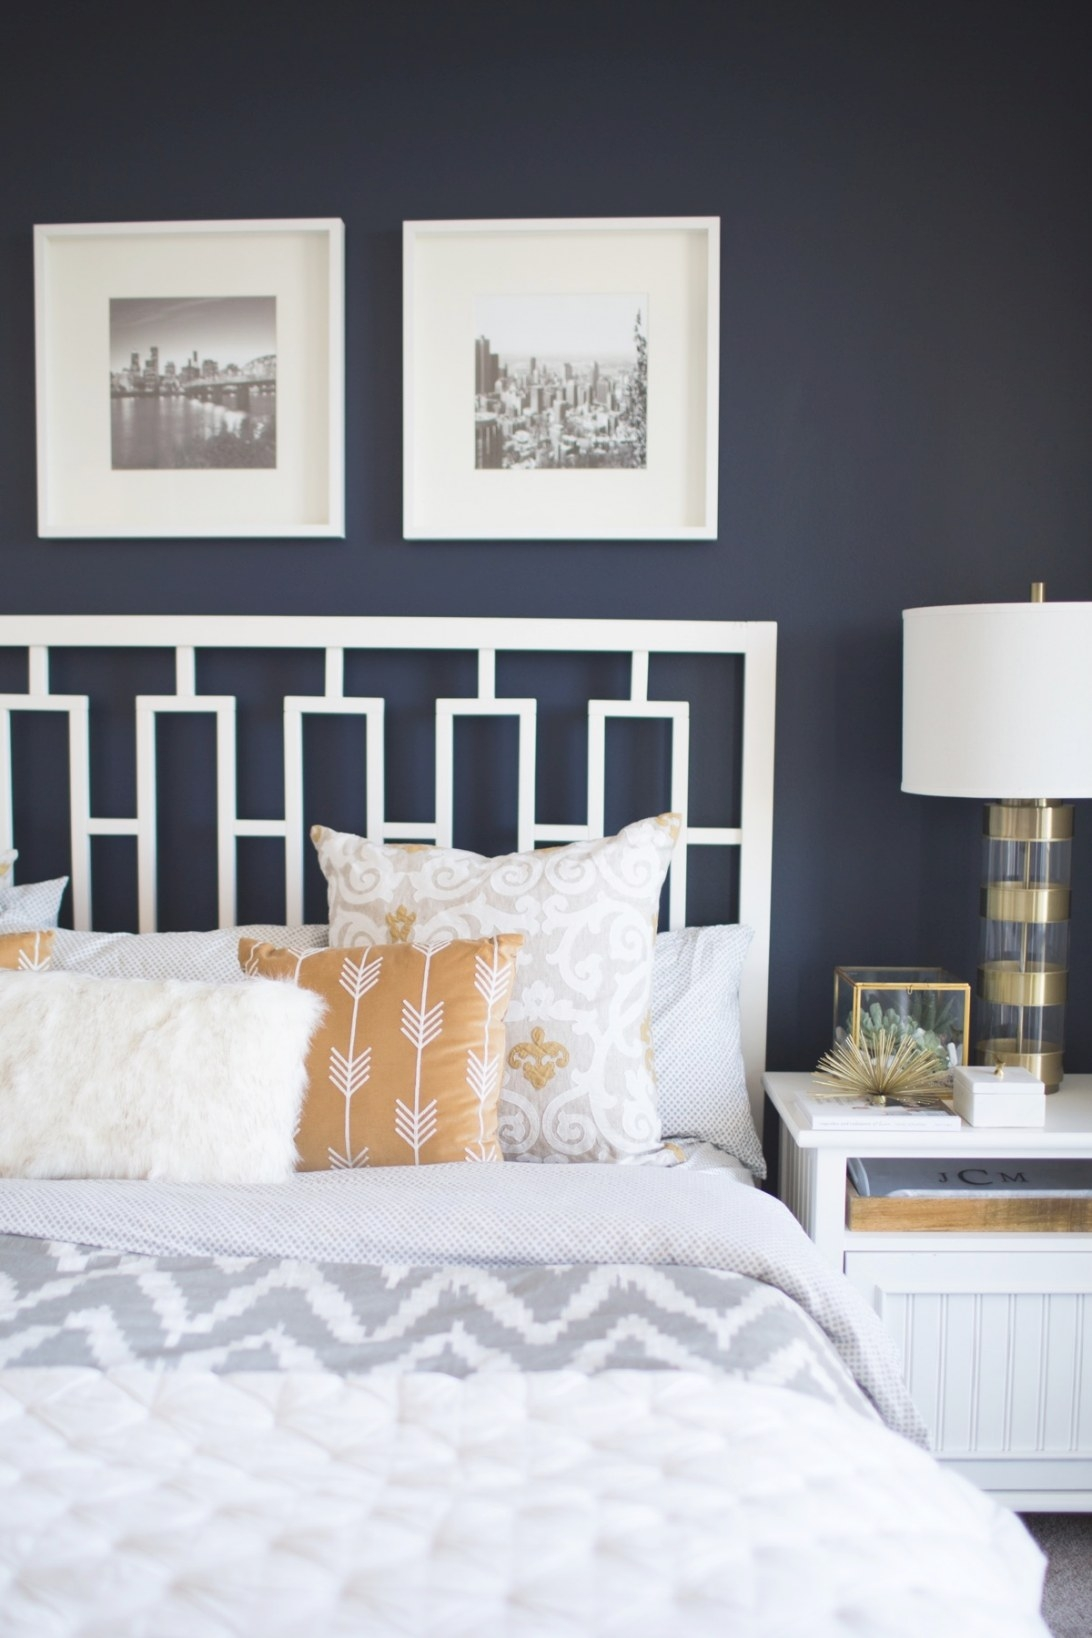 A Look Inside A Blogger'S Navy And Mustard Bedroom - My intended for Navy And Coral Bedroom